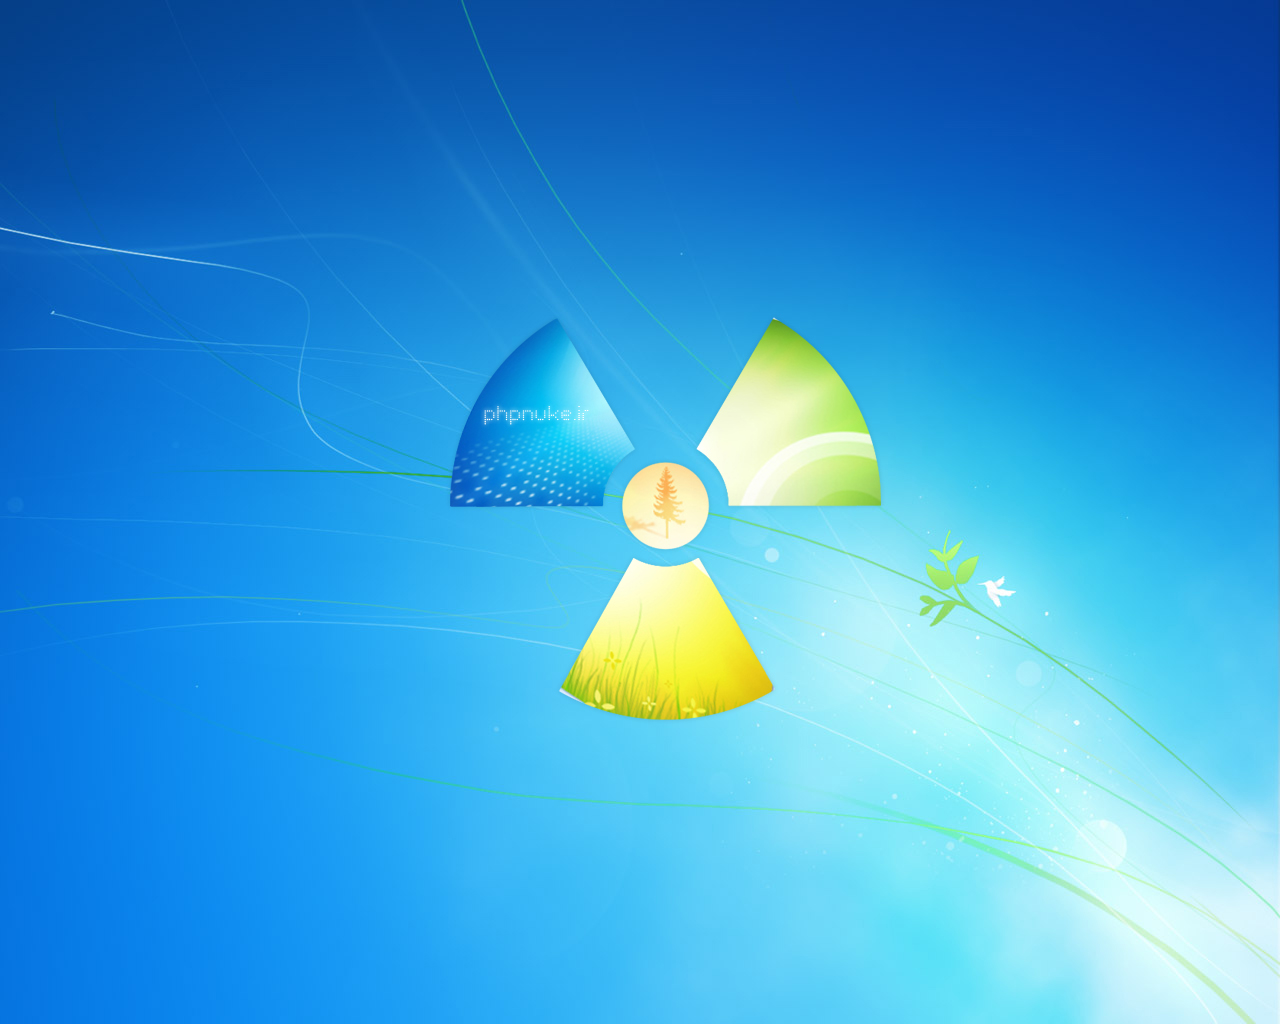 windows-7-wallpaper-hd (9)